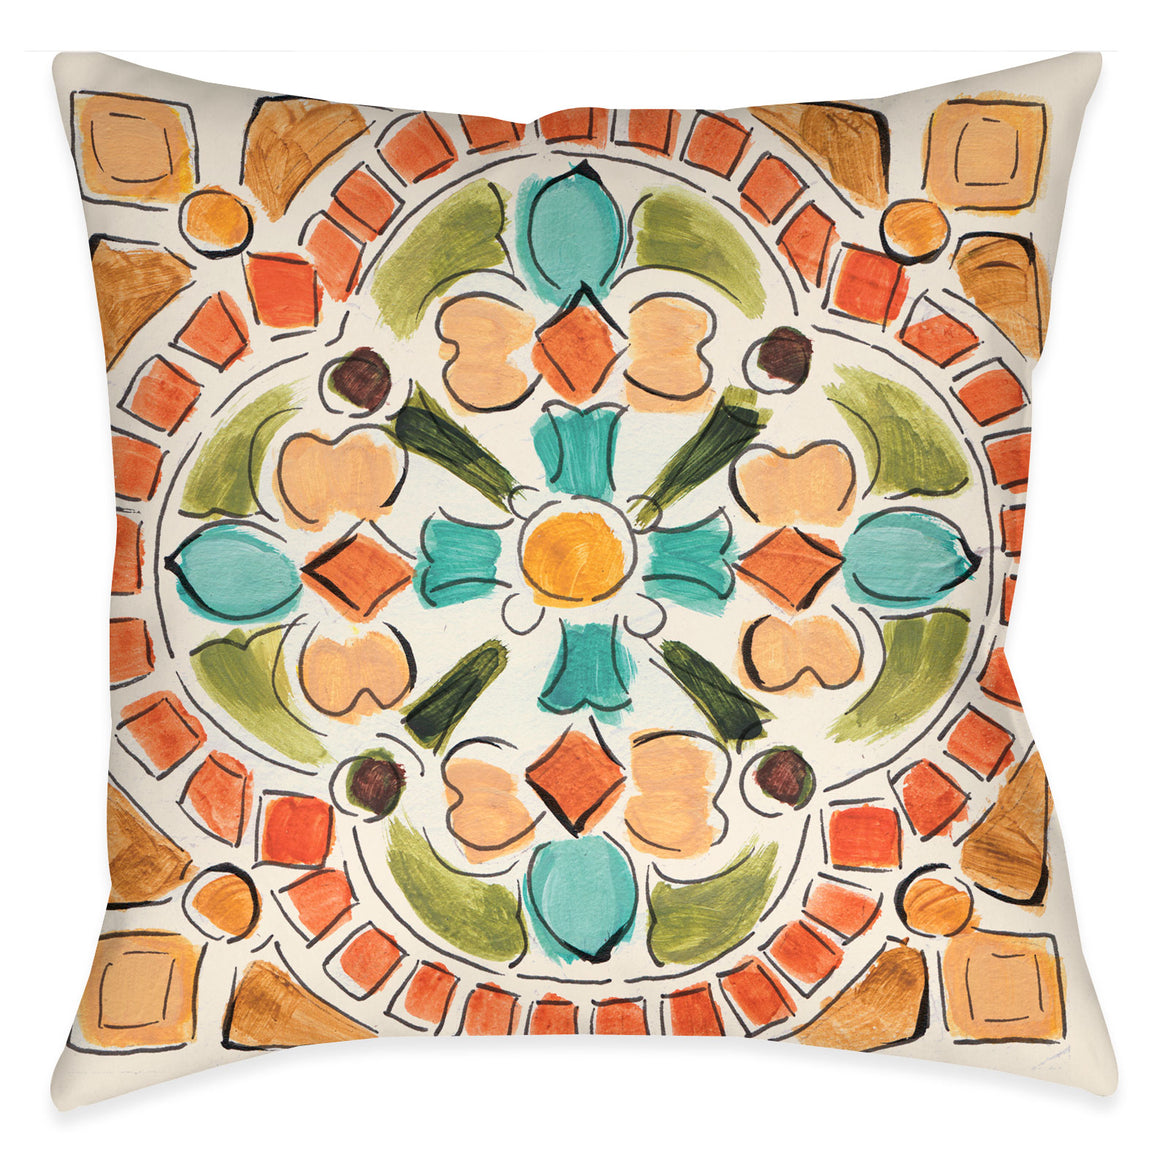 Add this painterly tuscan-tile inspired pillow to your decor for a unique worldly look.